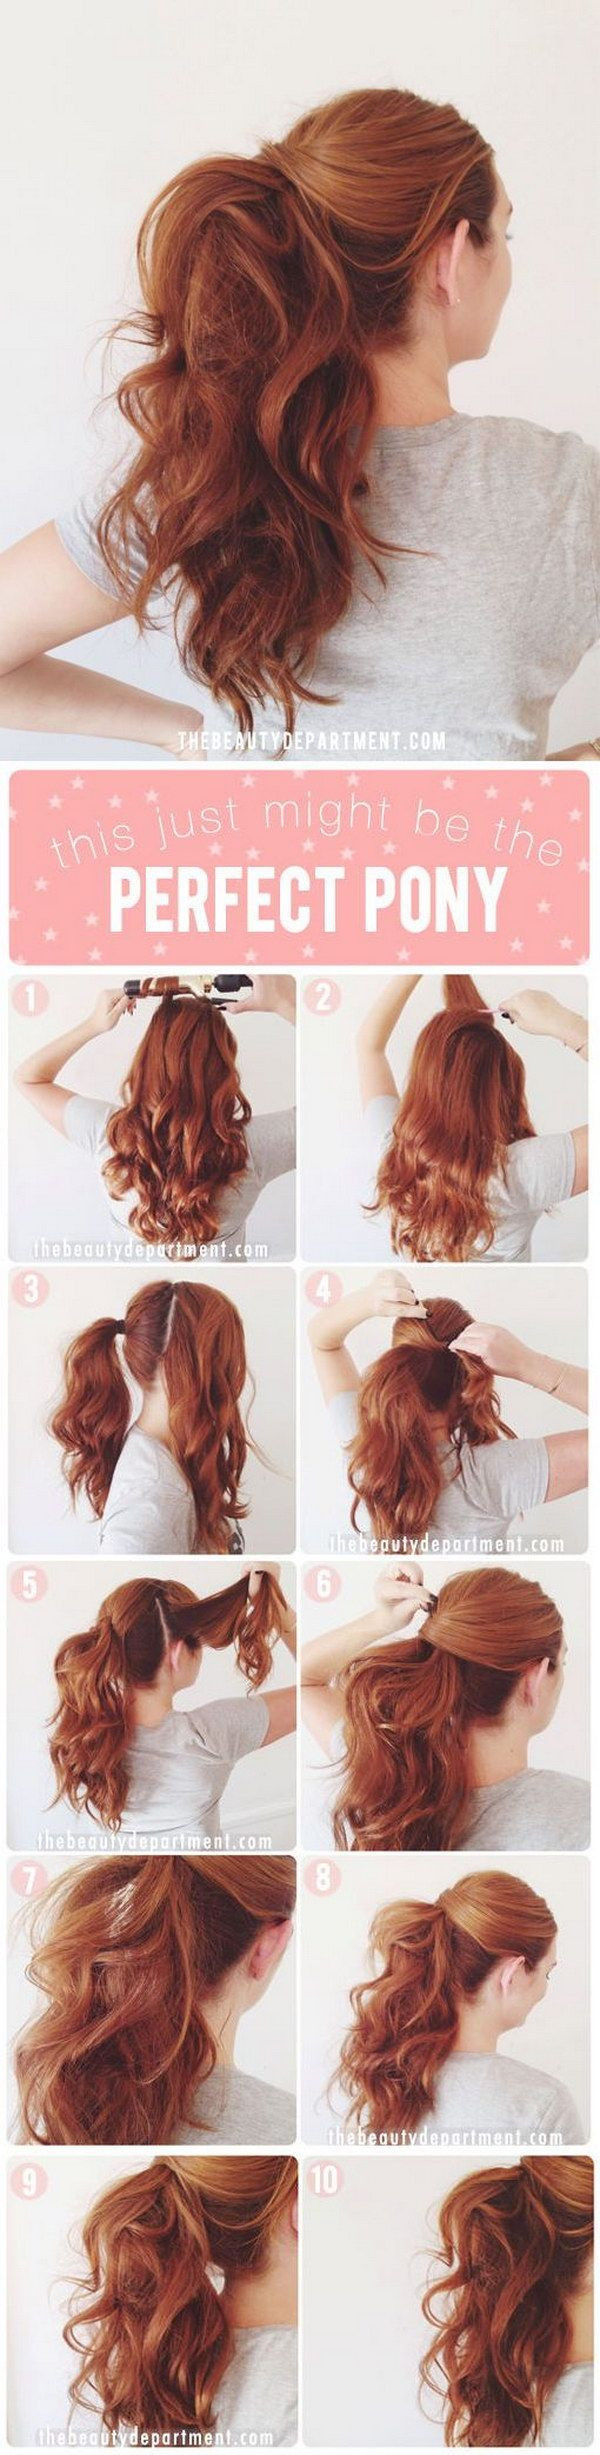 how to make a messy ponytail with curly hair